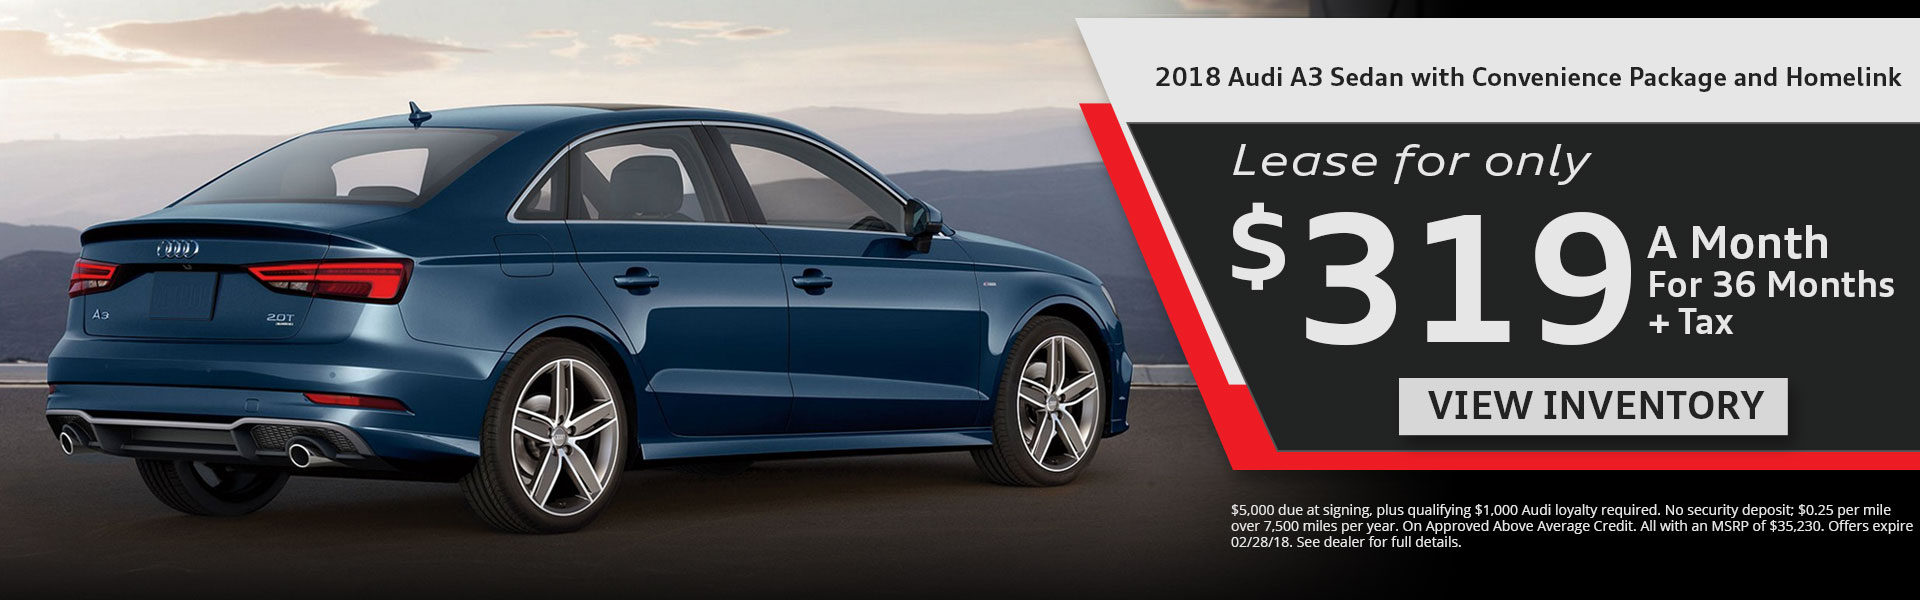 Audi Specials Keyes Audi Audi Dealership Near Van Nuys CA - Audi dealers los angeles area